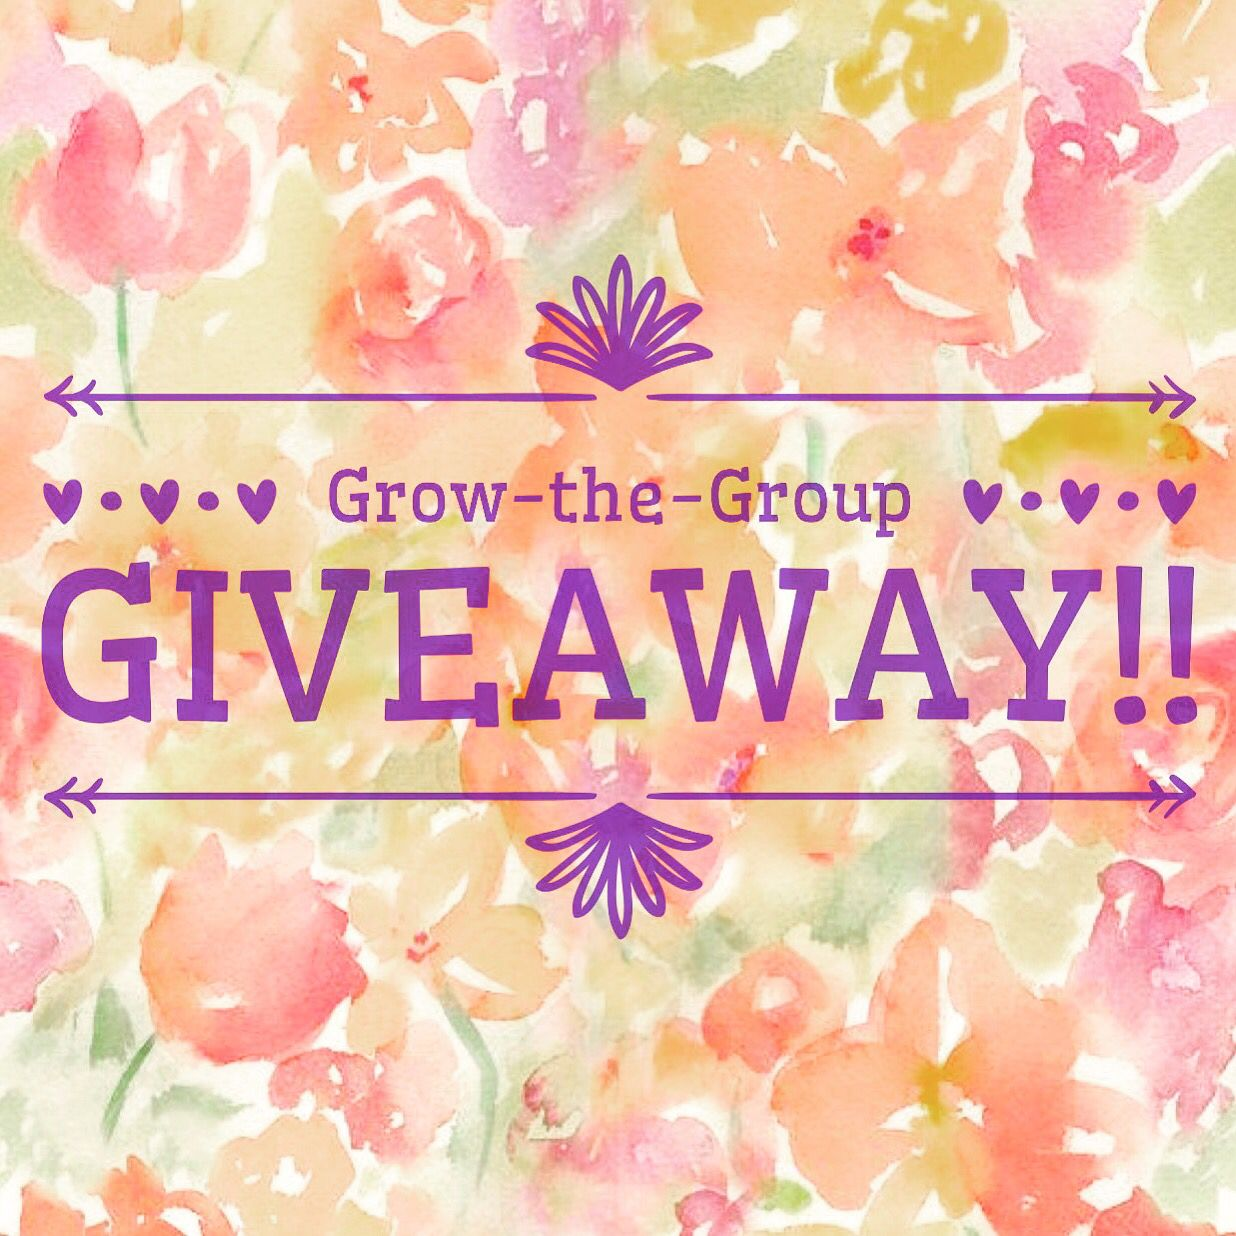 It's time for another GIVEAWAY! Help me grow my VIP Boutique group! If we get to 800 members I'll draw a winner for a FREE pair of buttery soft leggings! If we can hit 1,000 I'll draw a SECOND winner who will receive their pick of any top, skirt, or leggings from the boutique!